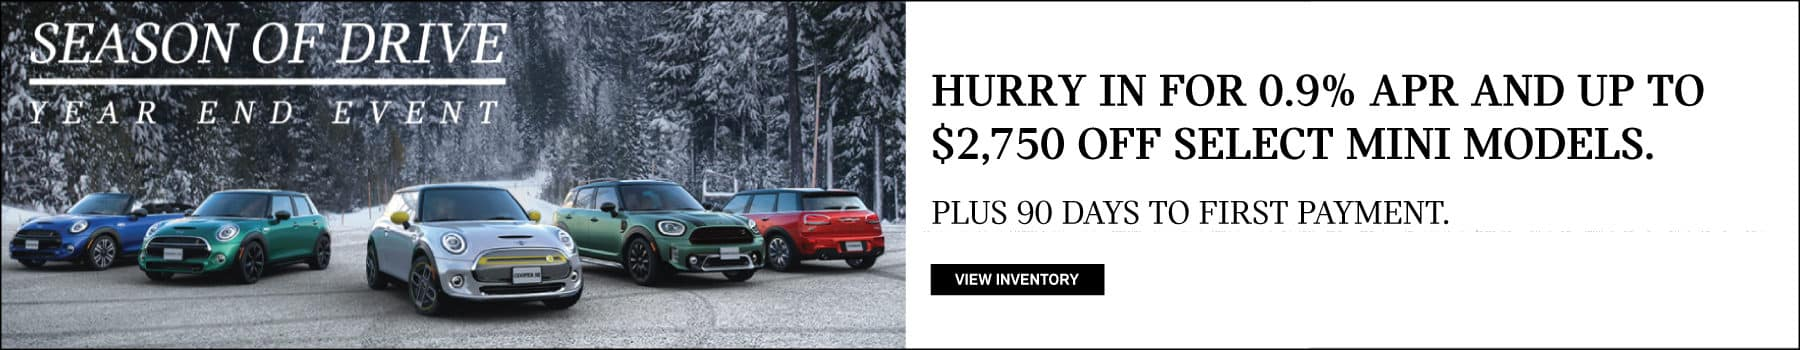 MINI family of vehicles with snow background and the season of drive logo. Season of Drive Year End Event. Hurry in for 0.9% APR and up to $2,750 off select MINI models. Plus 90 days to first payment.